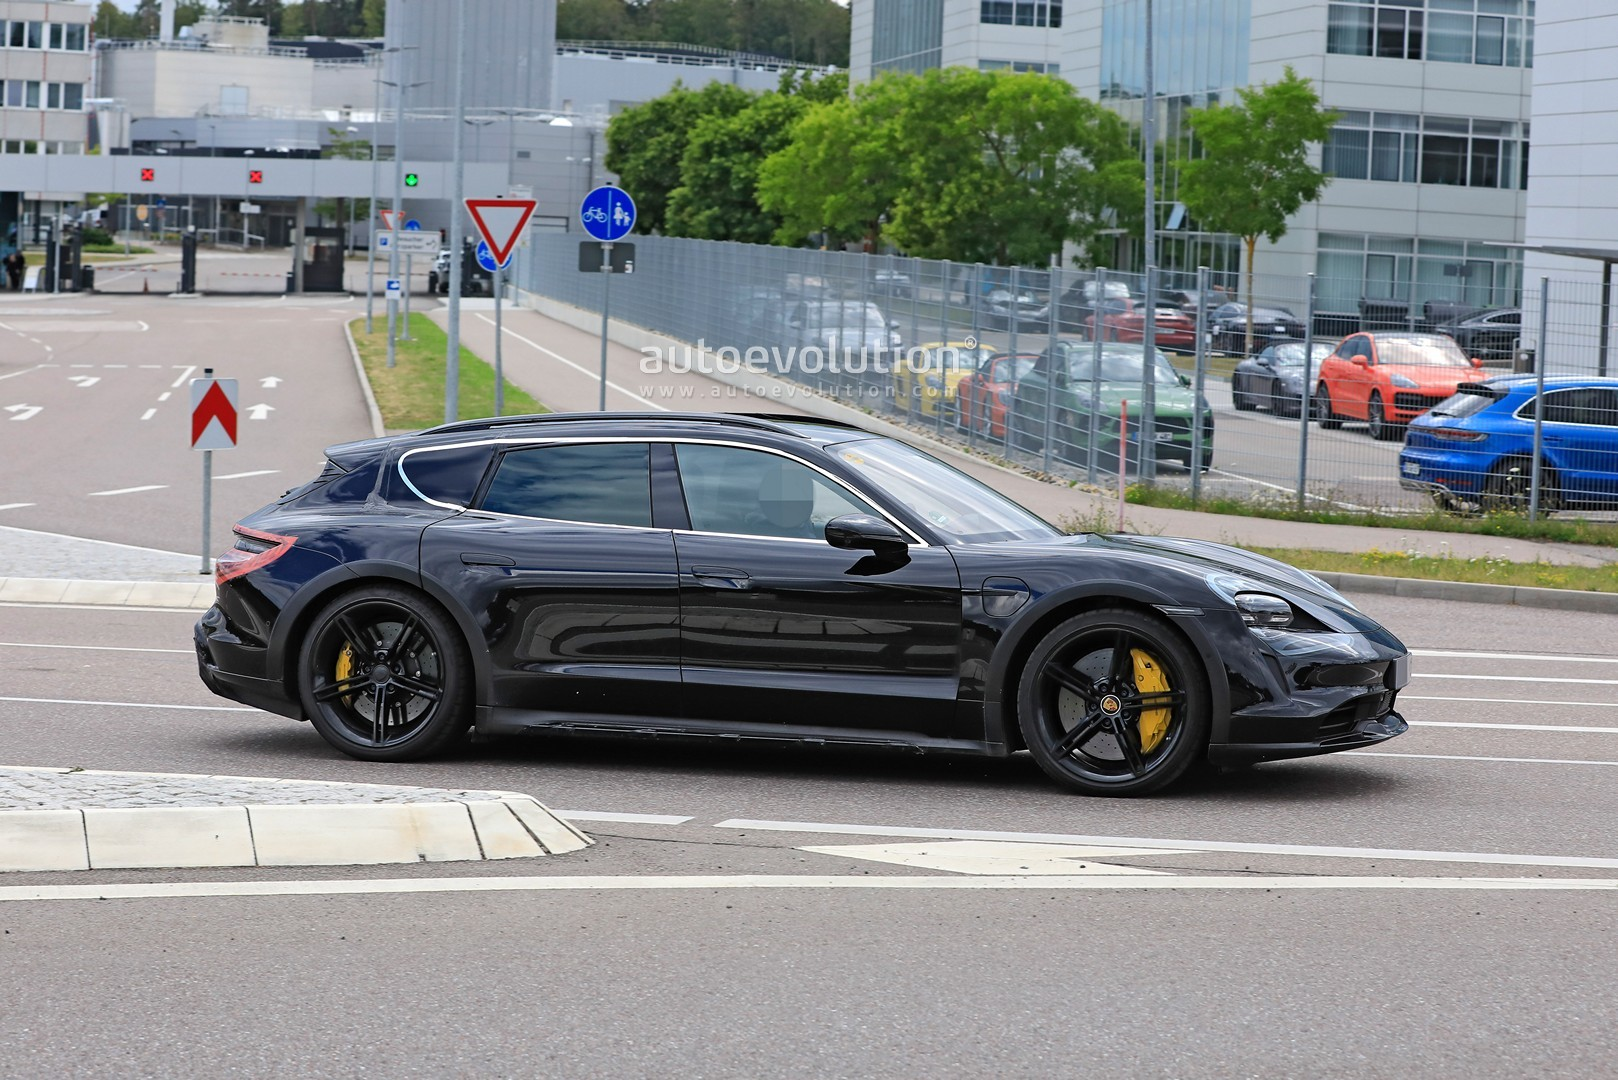 Porsche Taycan Cross Turismo Ev Shooting Brake Is Strange Yet Beautiful Autoevolution